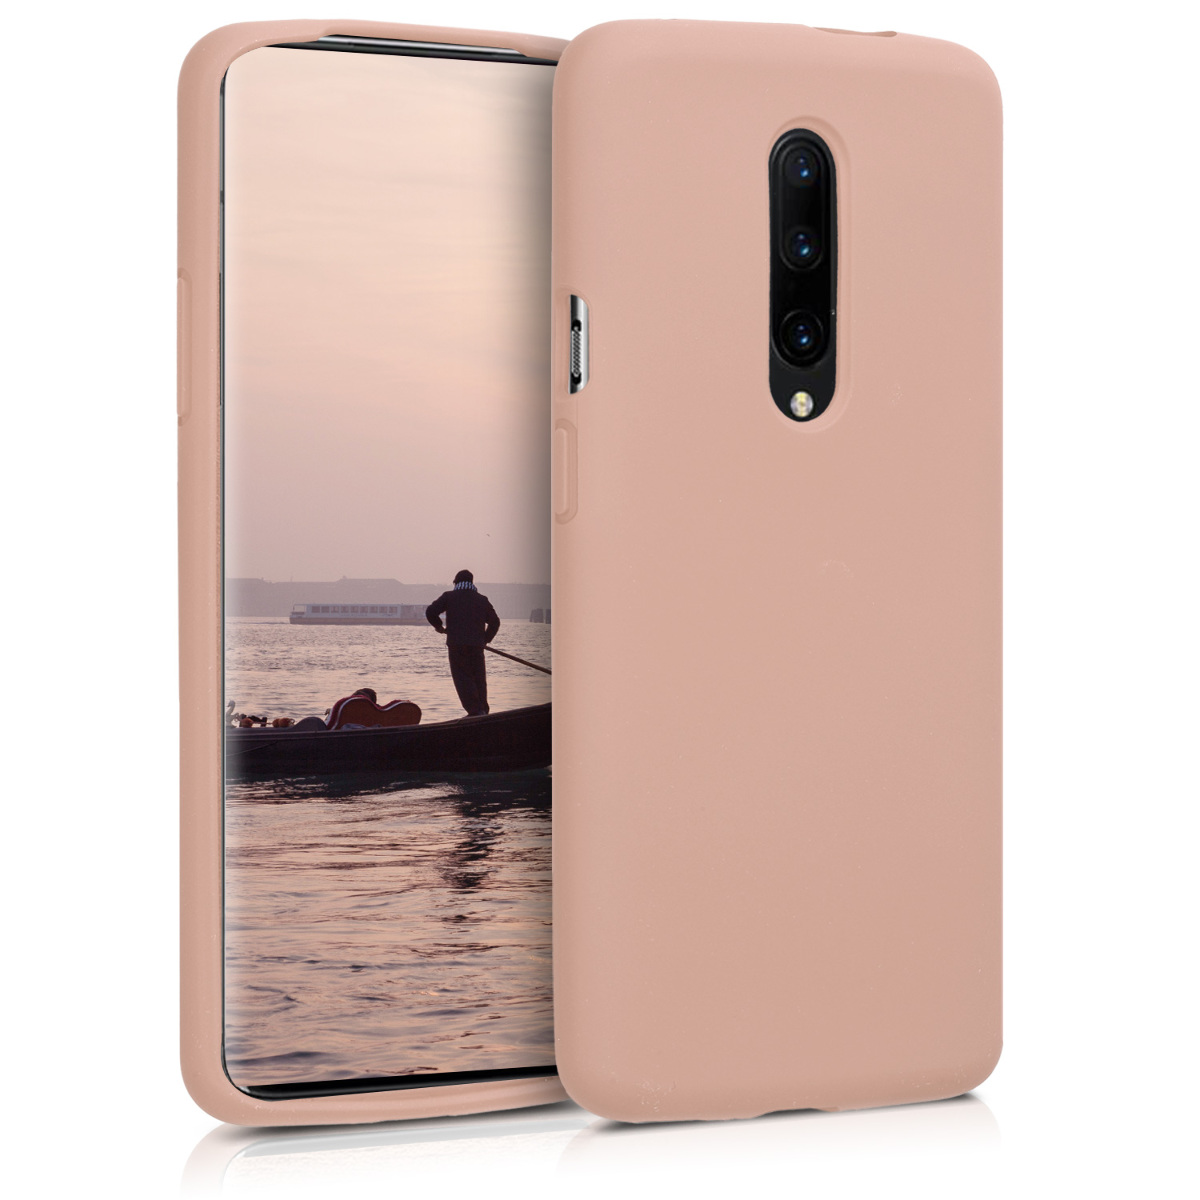 KW Θήκη Σιλικόνης OnePlus 7 Pro - Soft Flexible Rubber Protective Cover - Dusty Pink (48595.10)